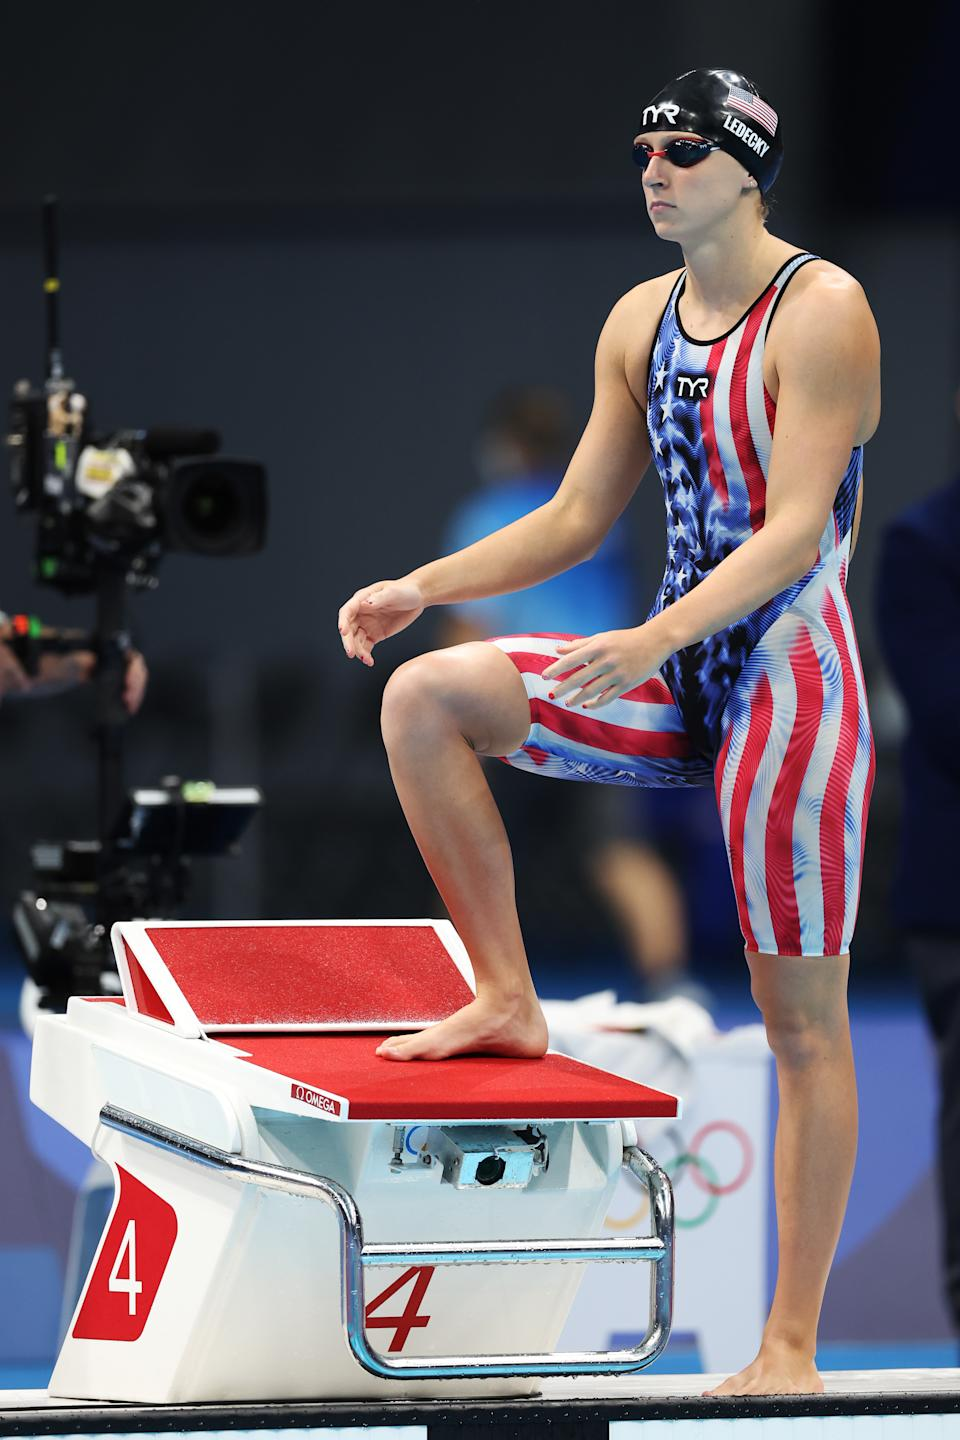 <p>TOKYO, JAPAN - JULY 28: Katie Ledecky of Team United States prepares to compete in the Women's 1500m Freestyle Final on day five of the Tokyo 2020 Olympic Games at Tokyo Aquatics Centre on July 28, 2021 in Tokyo, Japan. (Photo by Tom Pennington/Getty Images)</p>